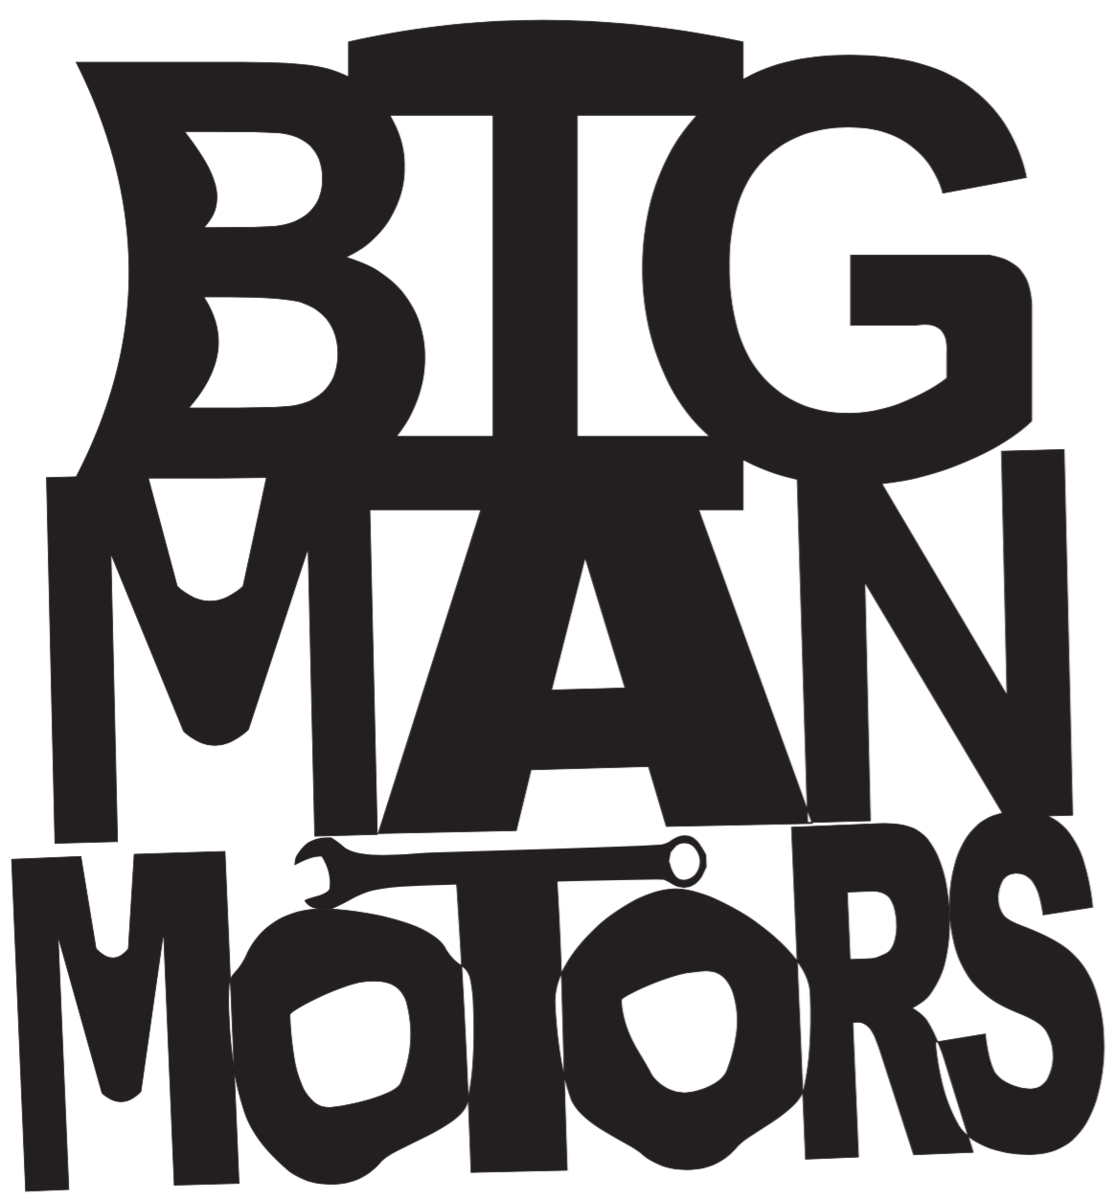 Big Man Motors Farmington Mn Read Consumer Reviews